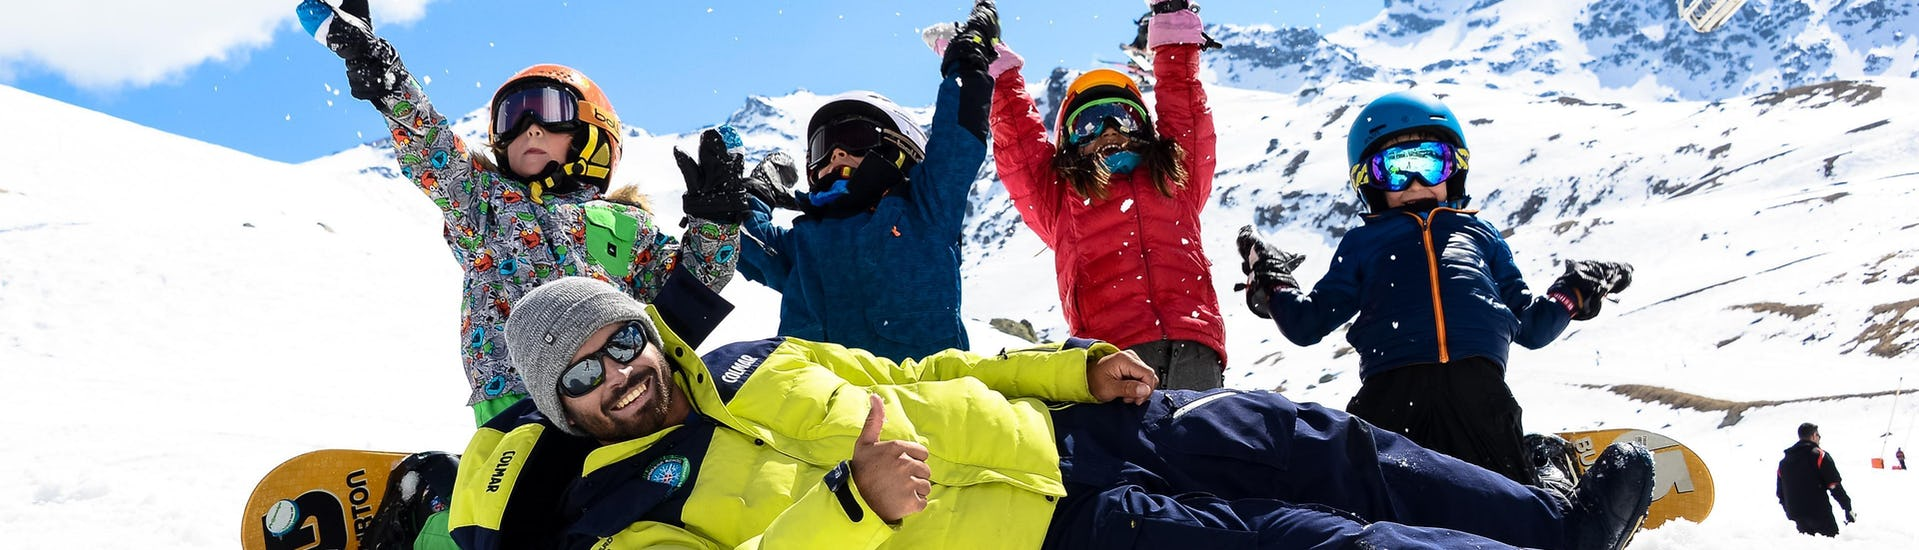 Young snowboarders are throwing snow in the air behind their snowboard instructor from the ski school Prosneige Méribel during theirSnowboarding Lessons for Kids - All Levels & Ages.